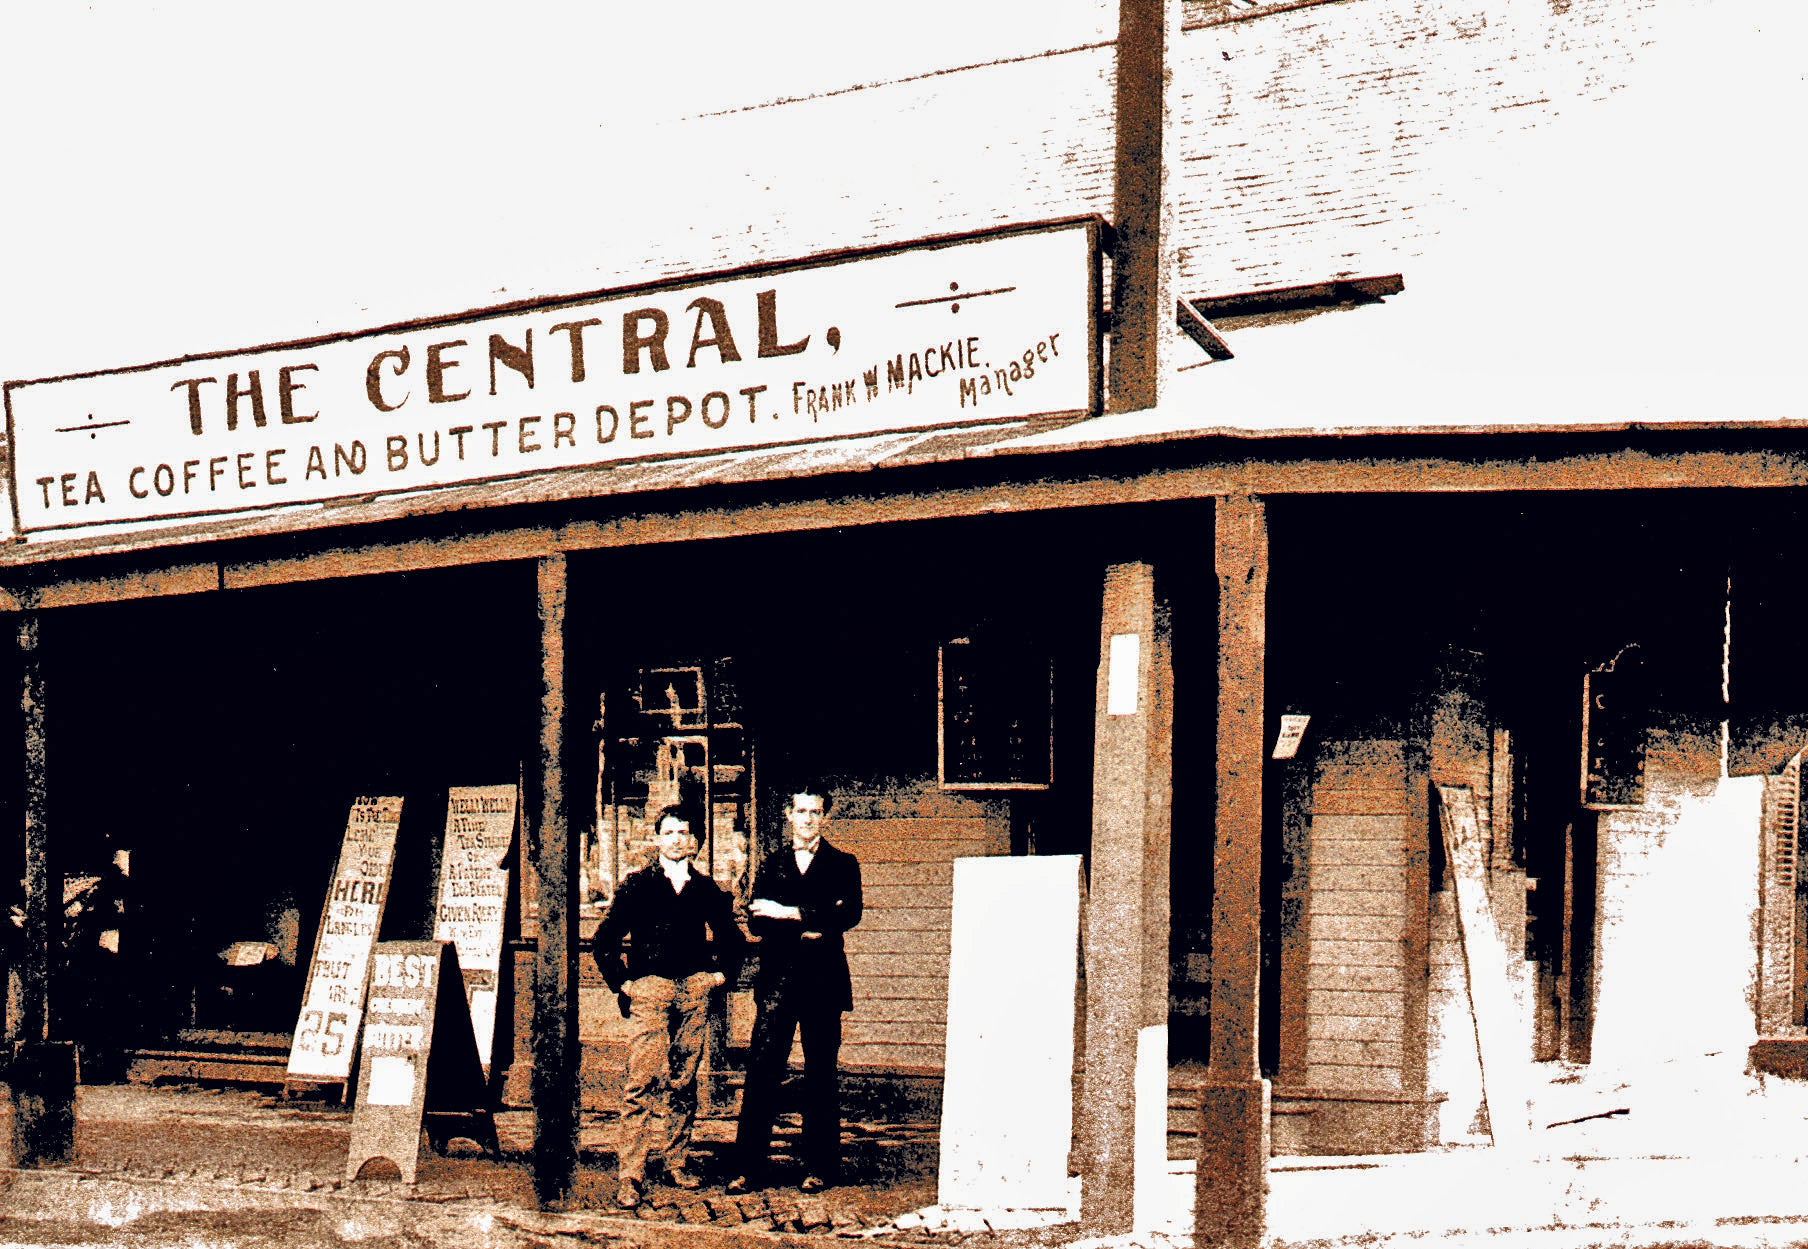 Central Coffee and Butter depot building